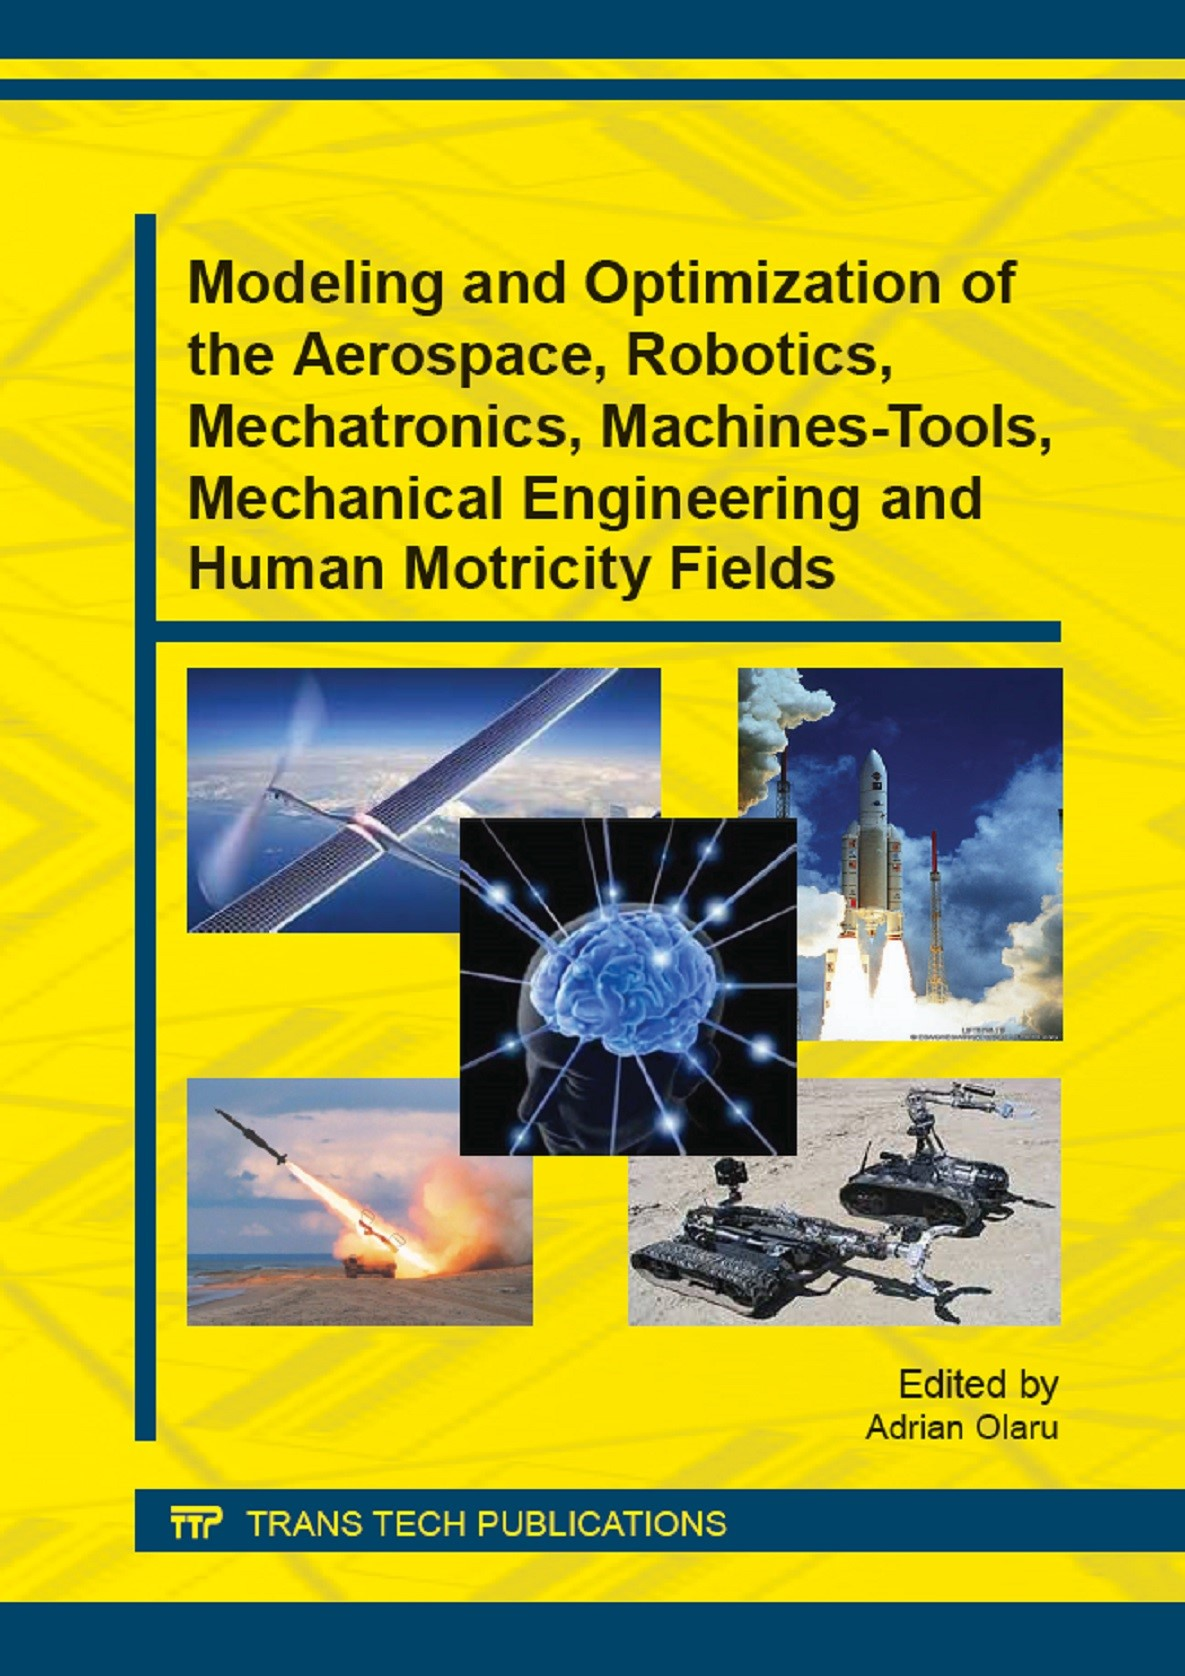 Modeling and Optimization of the Aerospace, Robotics, Mechatronics, Machines-Tools, Mechanical Engineering and Human Motricity Fields | Olaru, 2014 | Buch (Cover)